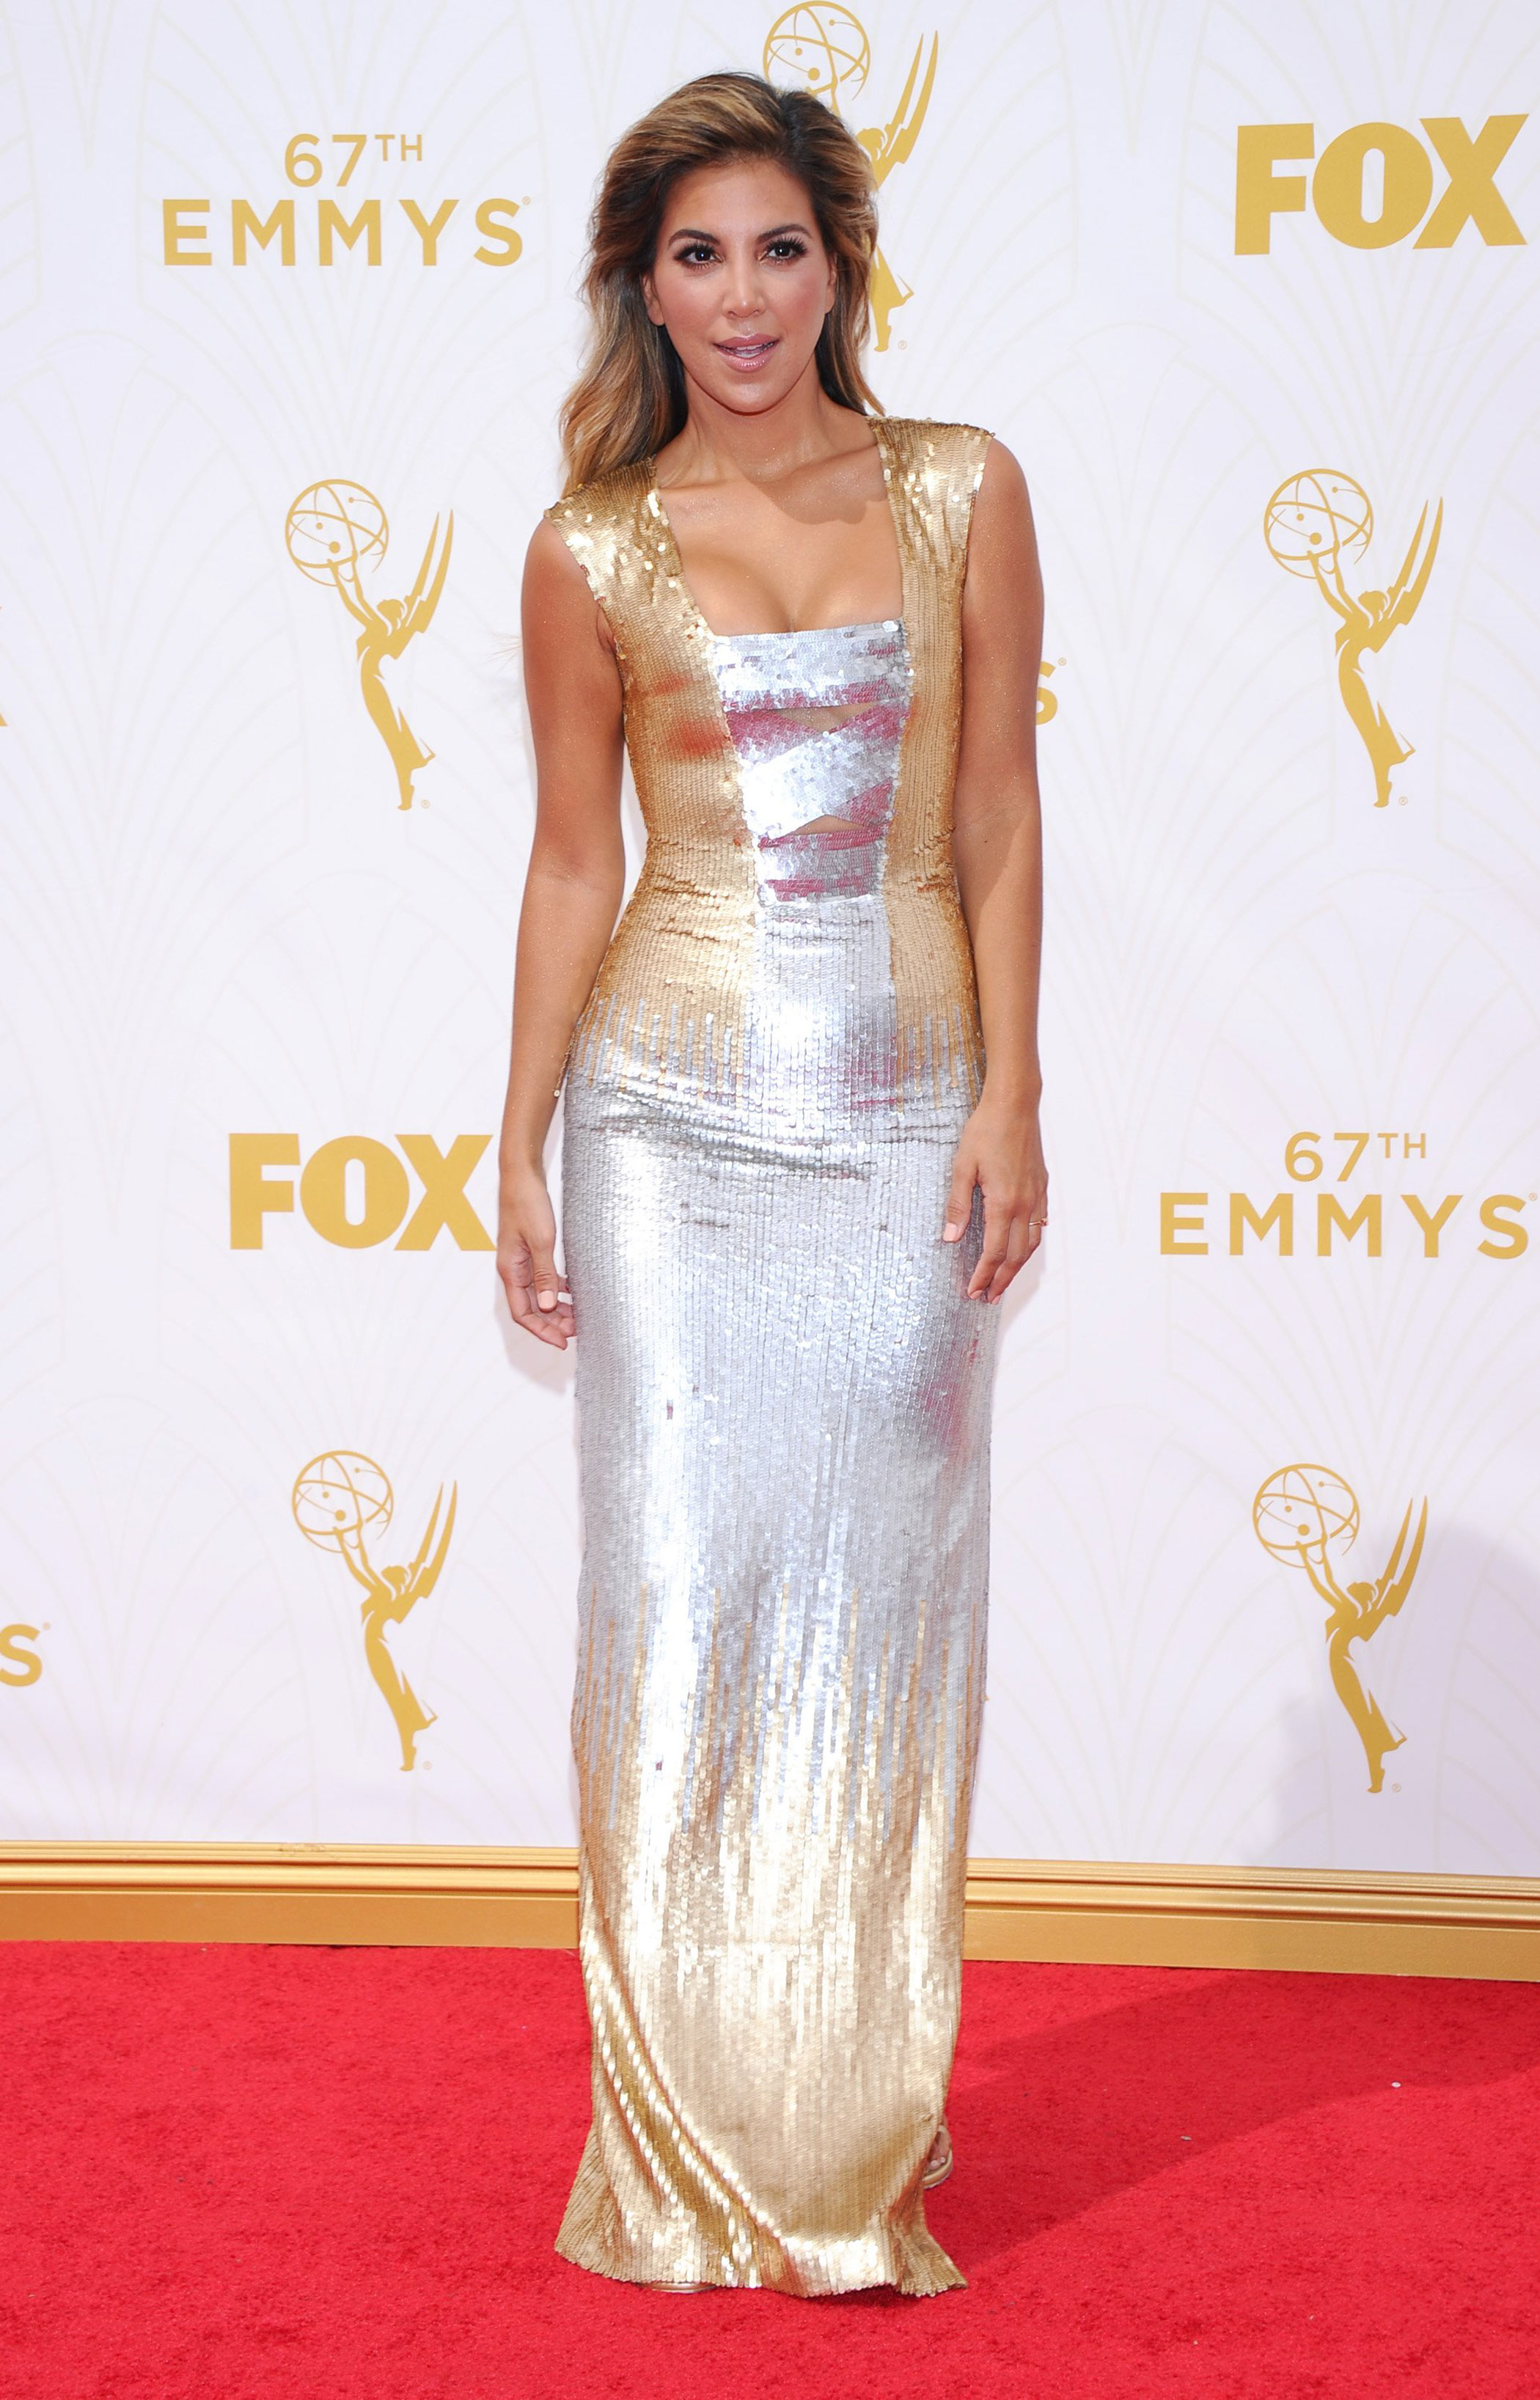 Liz Hernandez at the 67th Emmy Award on Sept. 20, 2015 in Los Angeles.